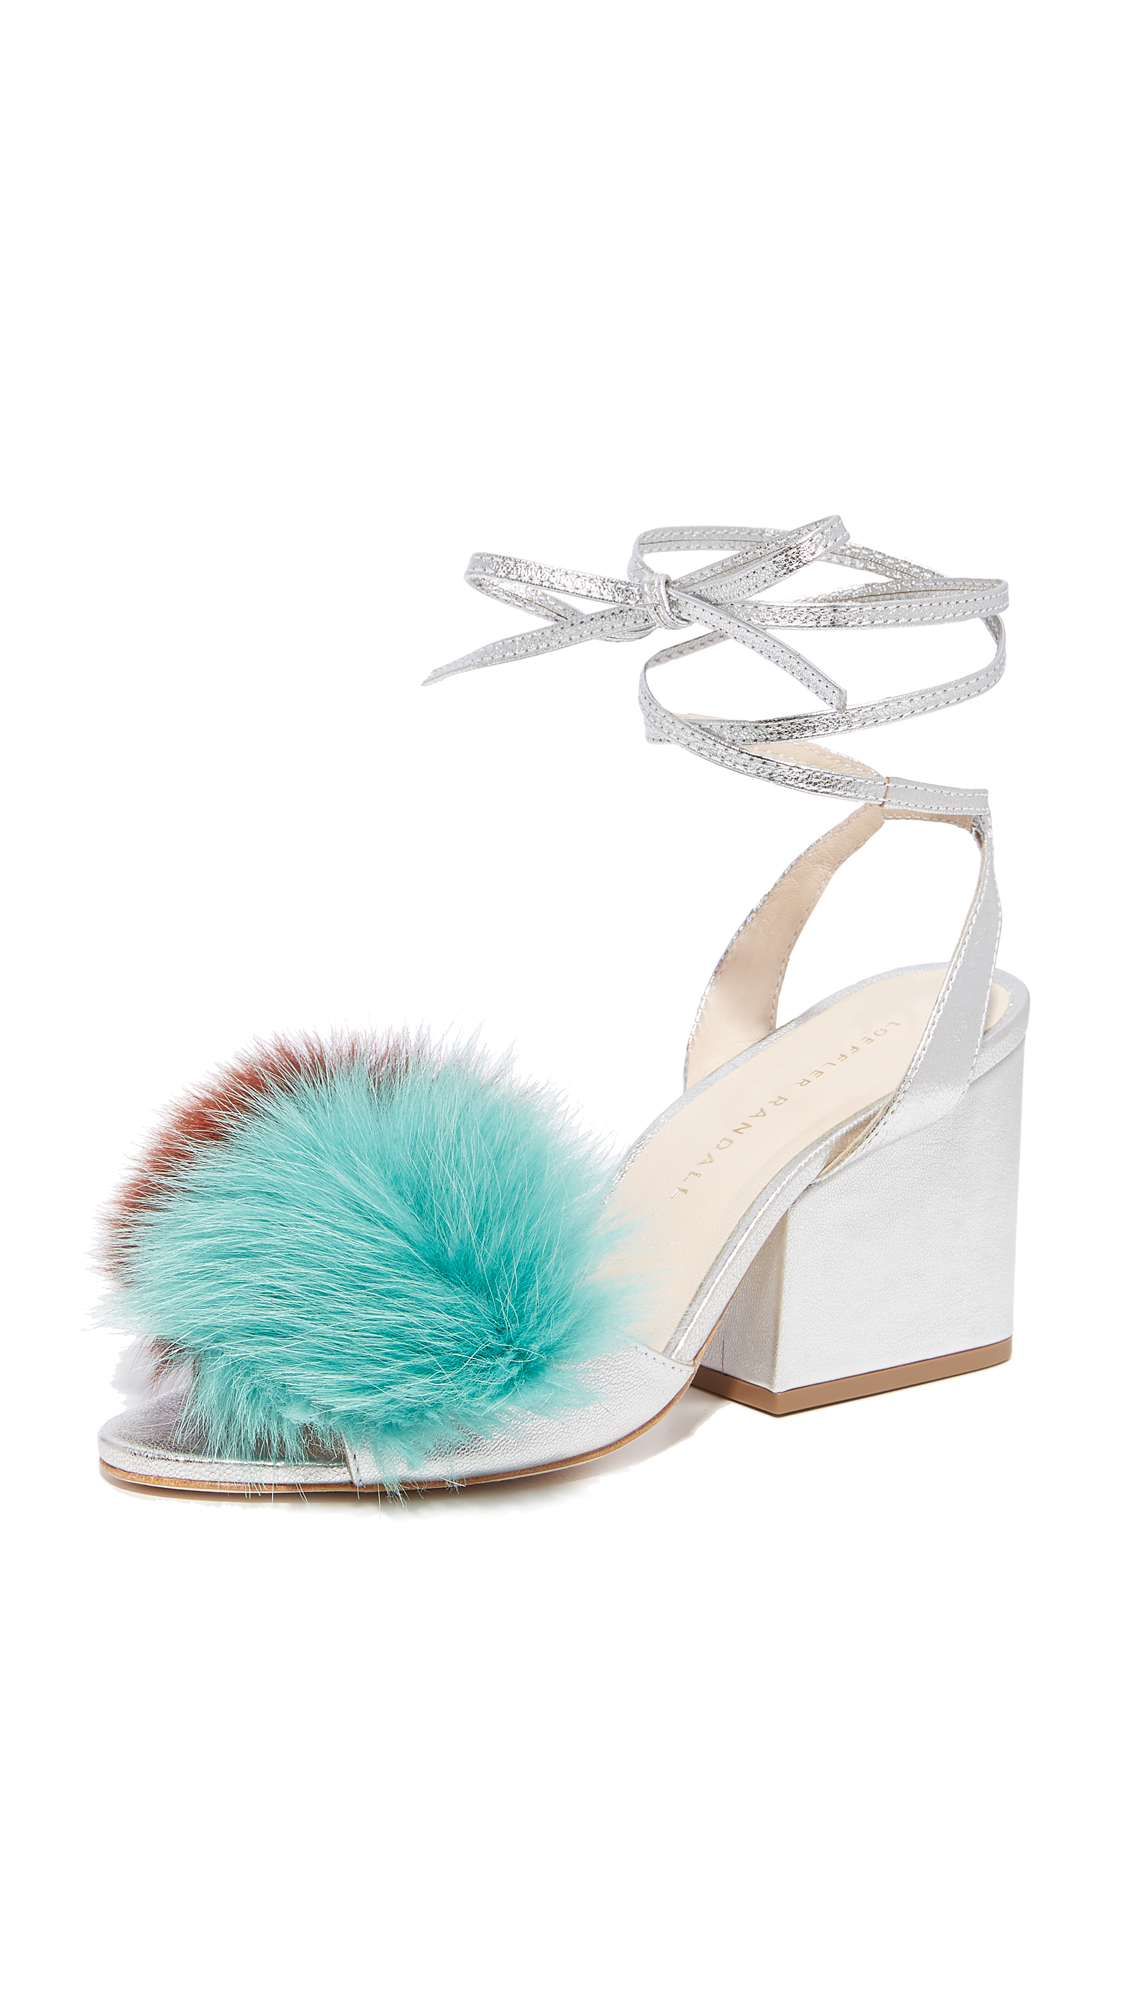 Loeffler Randall Nicky Block Heel Strappy Fur Sandals - Multi/Silver